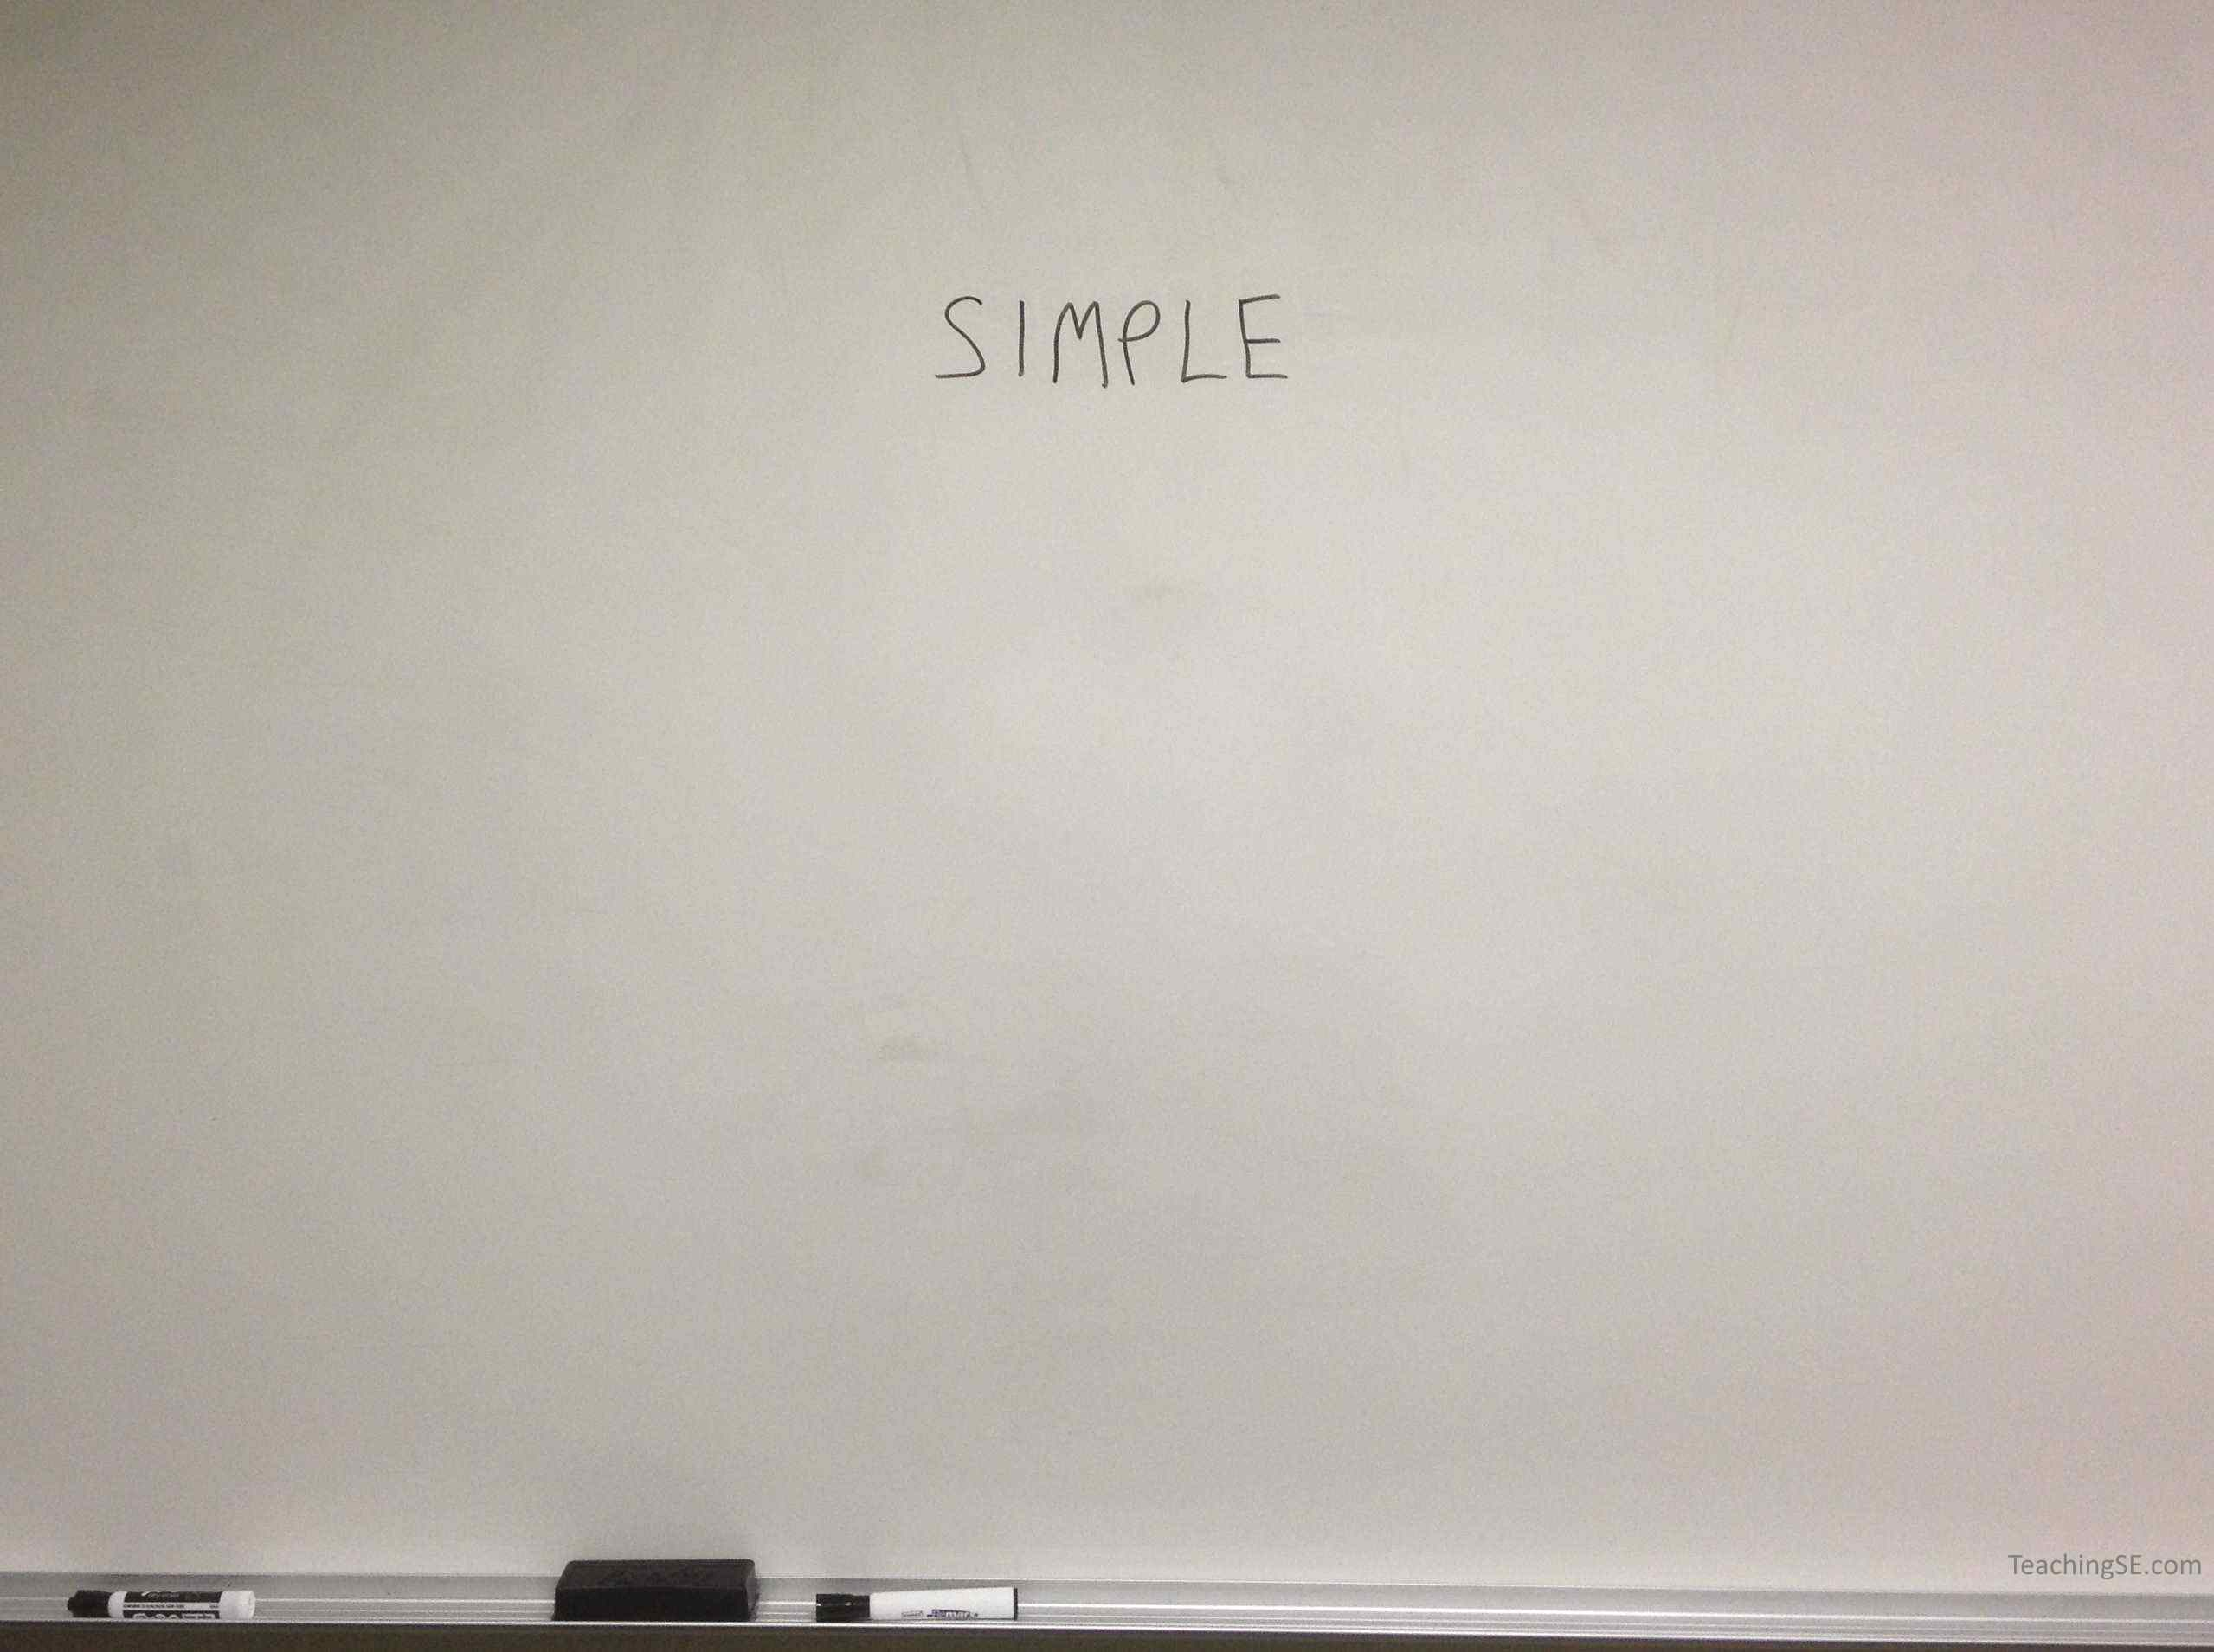 A blank whiteboard with the word 'Simplicity' written on it